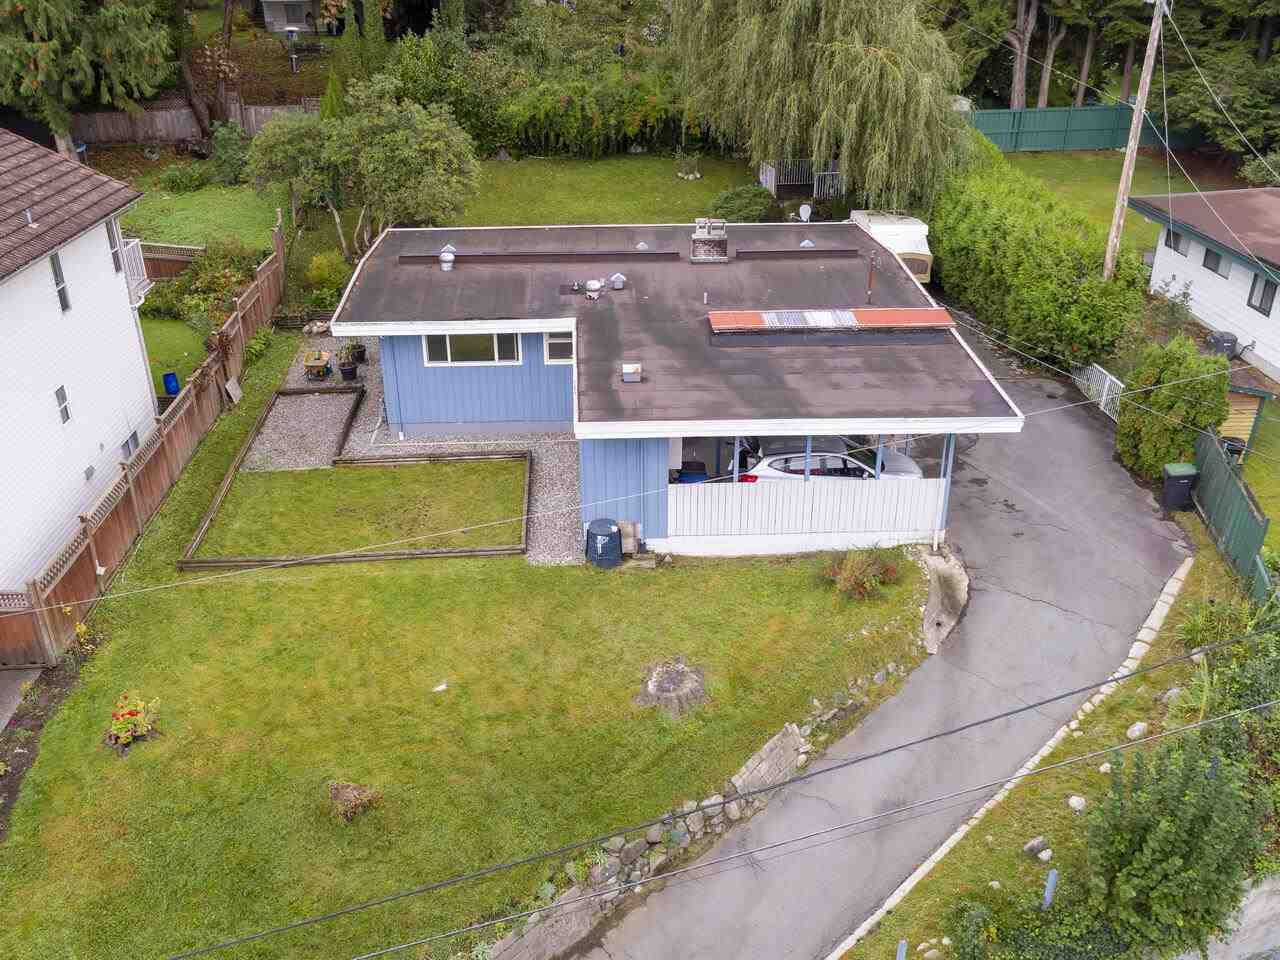 """Main Photo: 1934 WARWICK Crescent in Port Coquitlam: Mary Hill House for sale in """"MARY HILL"""" : MLS®# R2510324"""